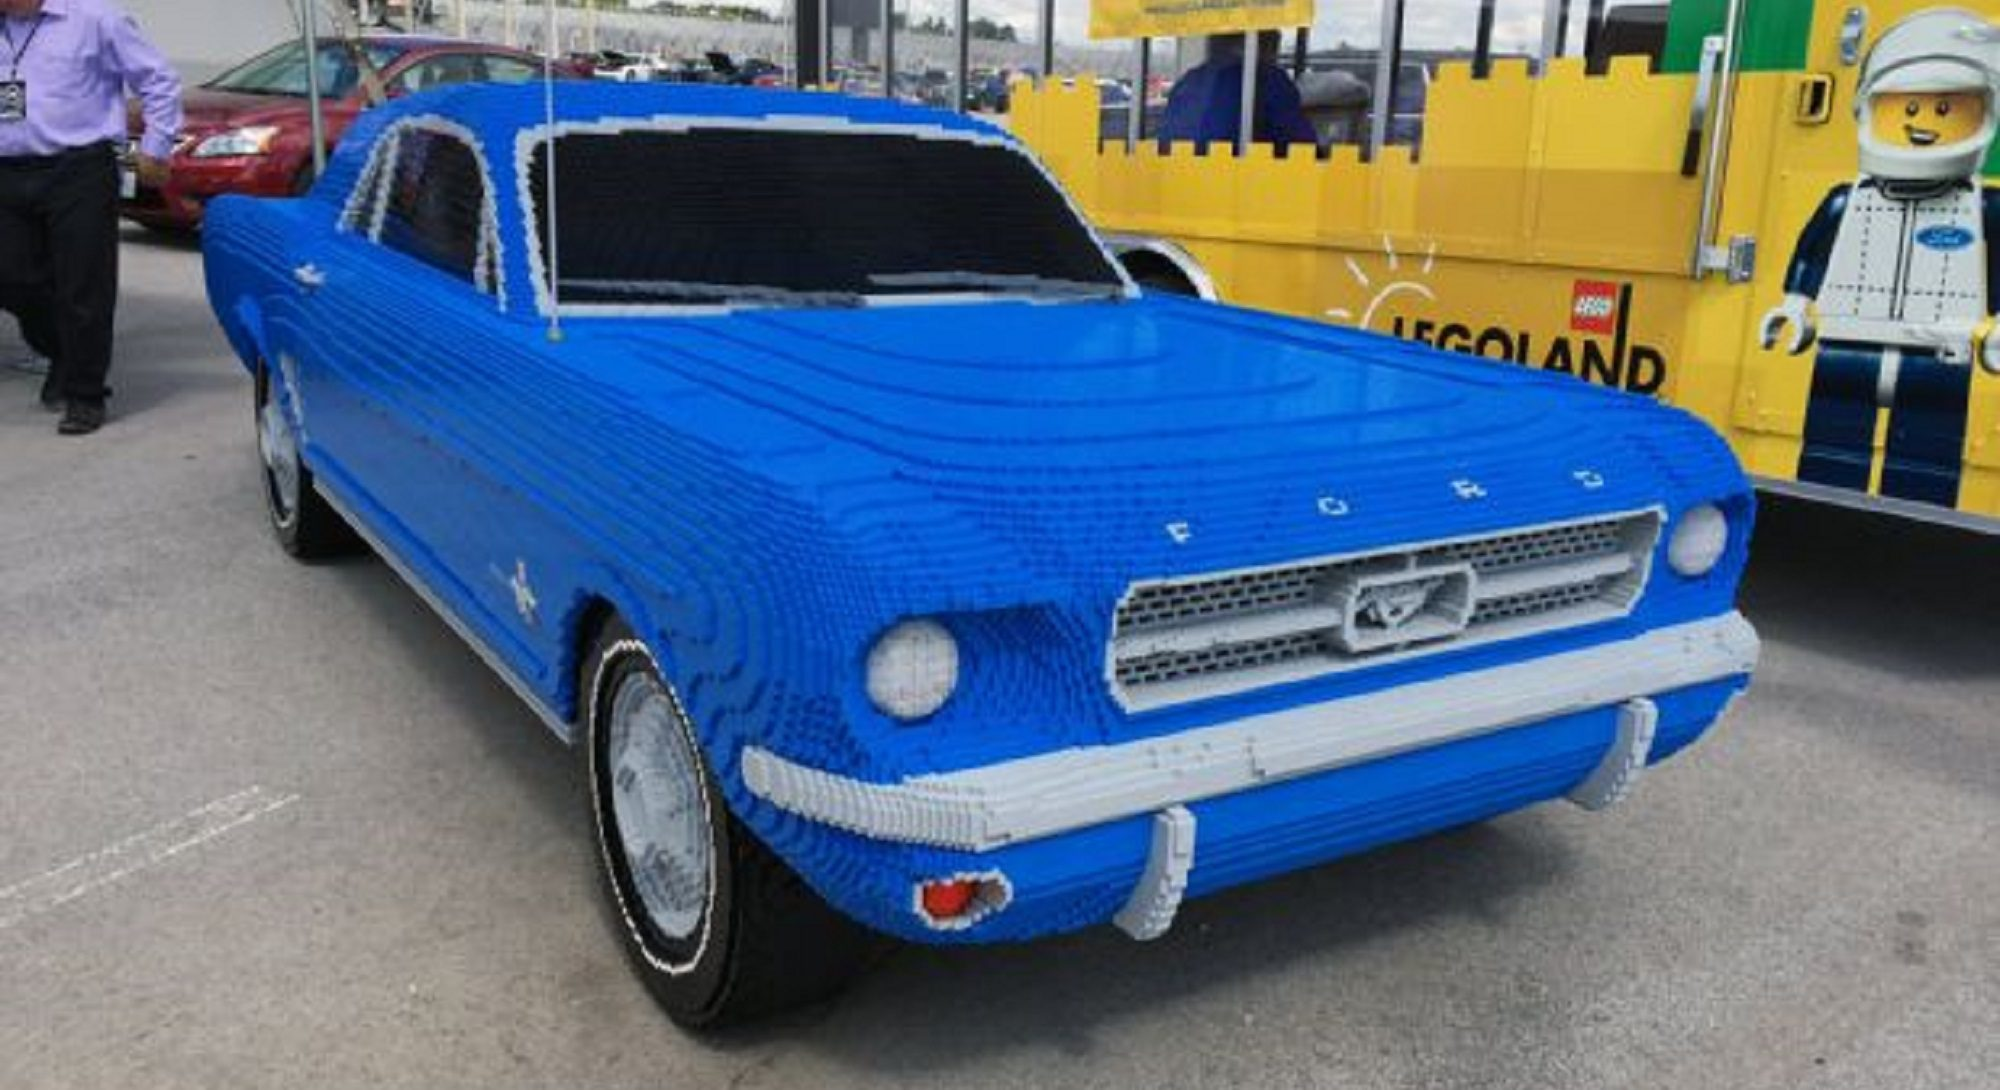 La Lego onora Ford Mustang, ecco foto e video